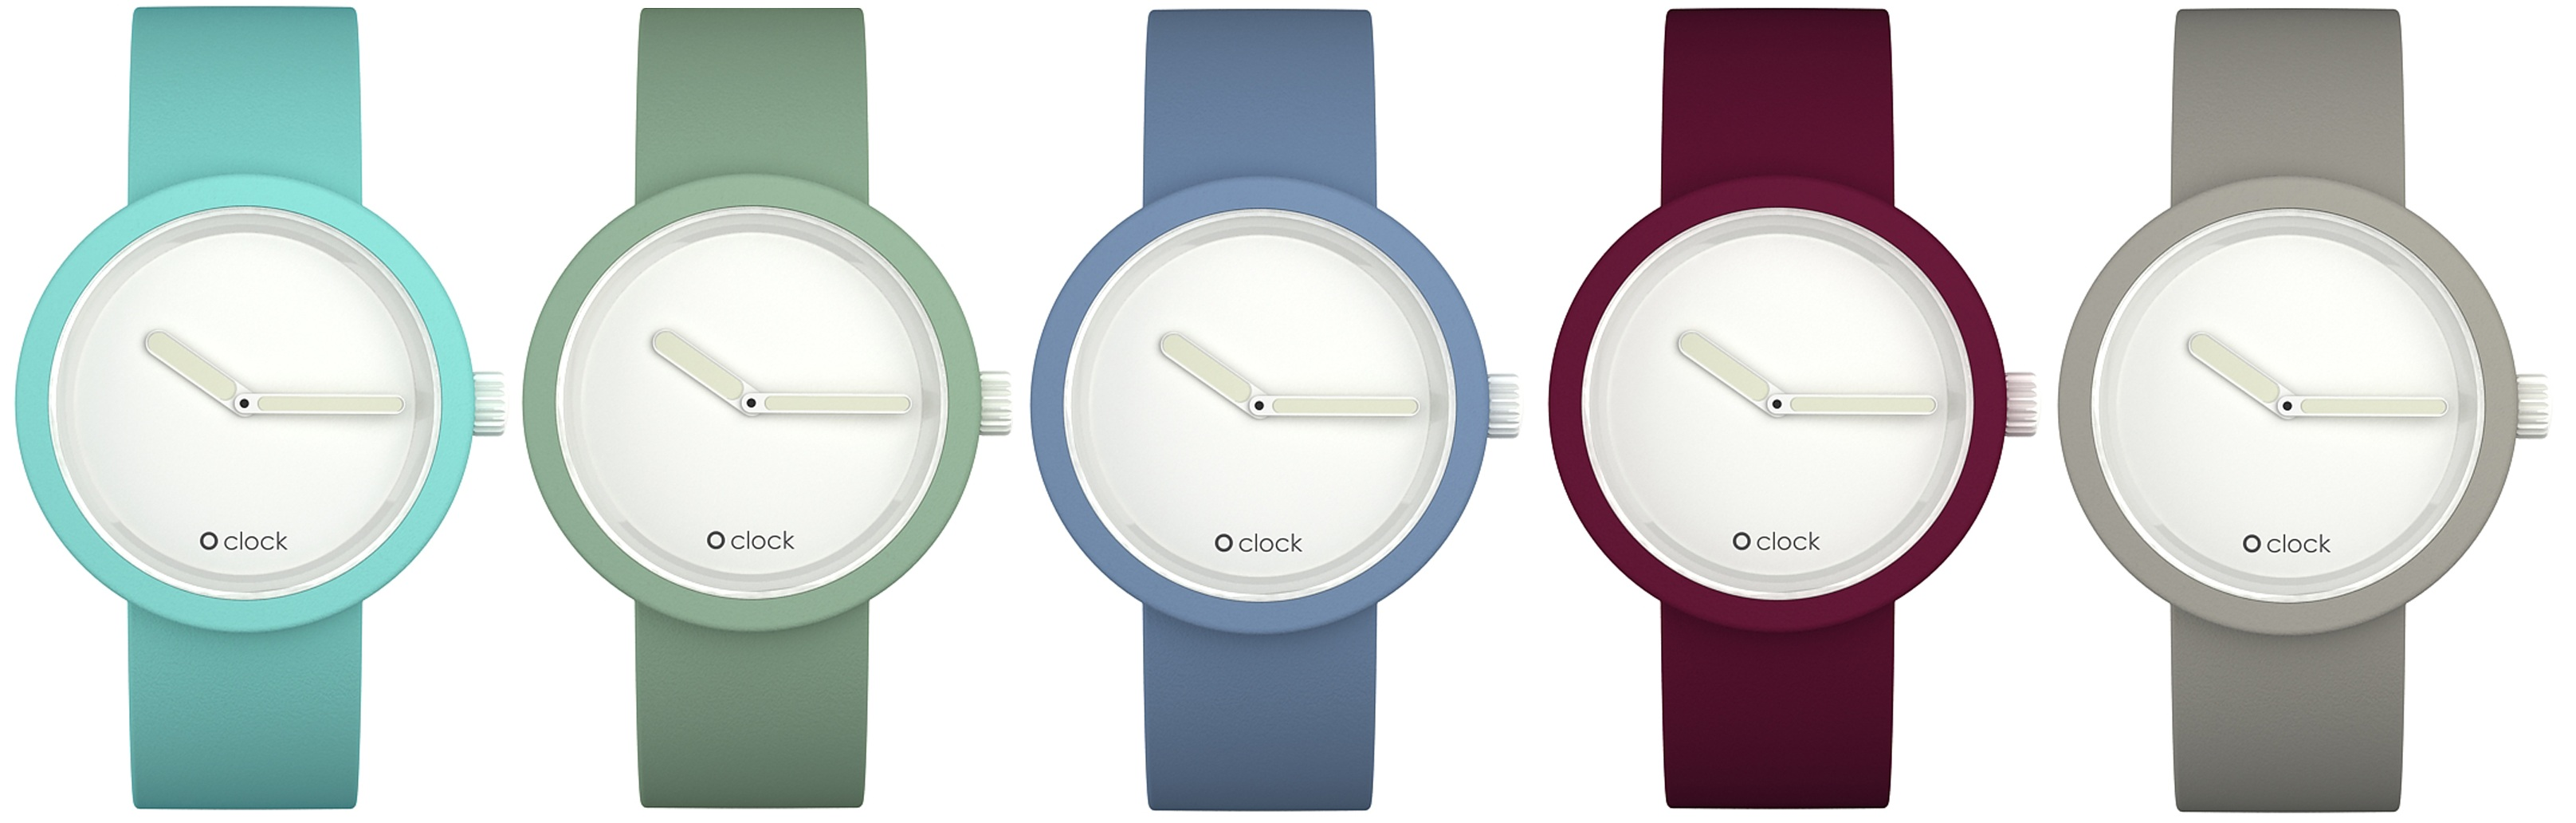 Newest Oclock Classic Watches New Colours